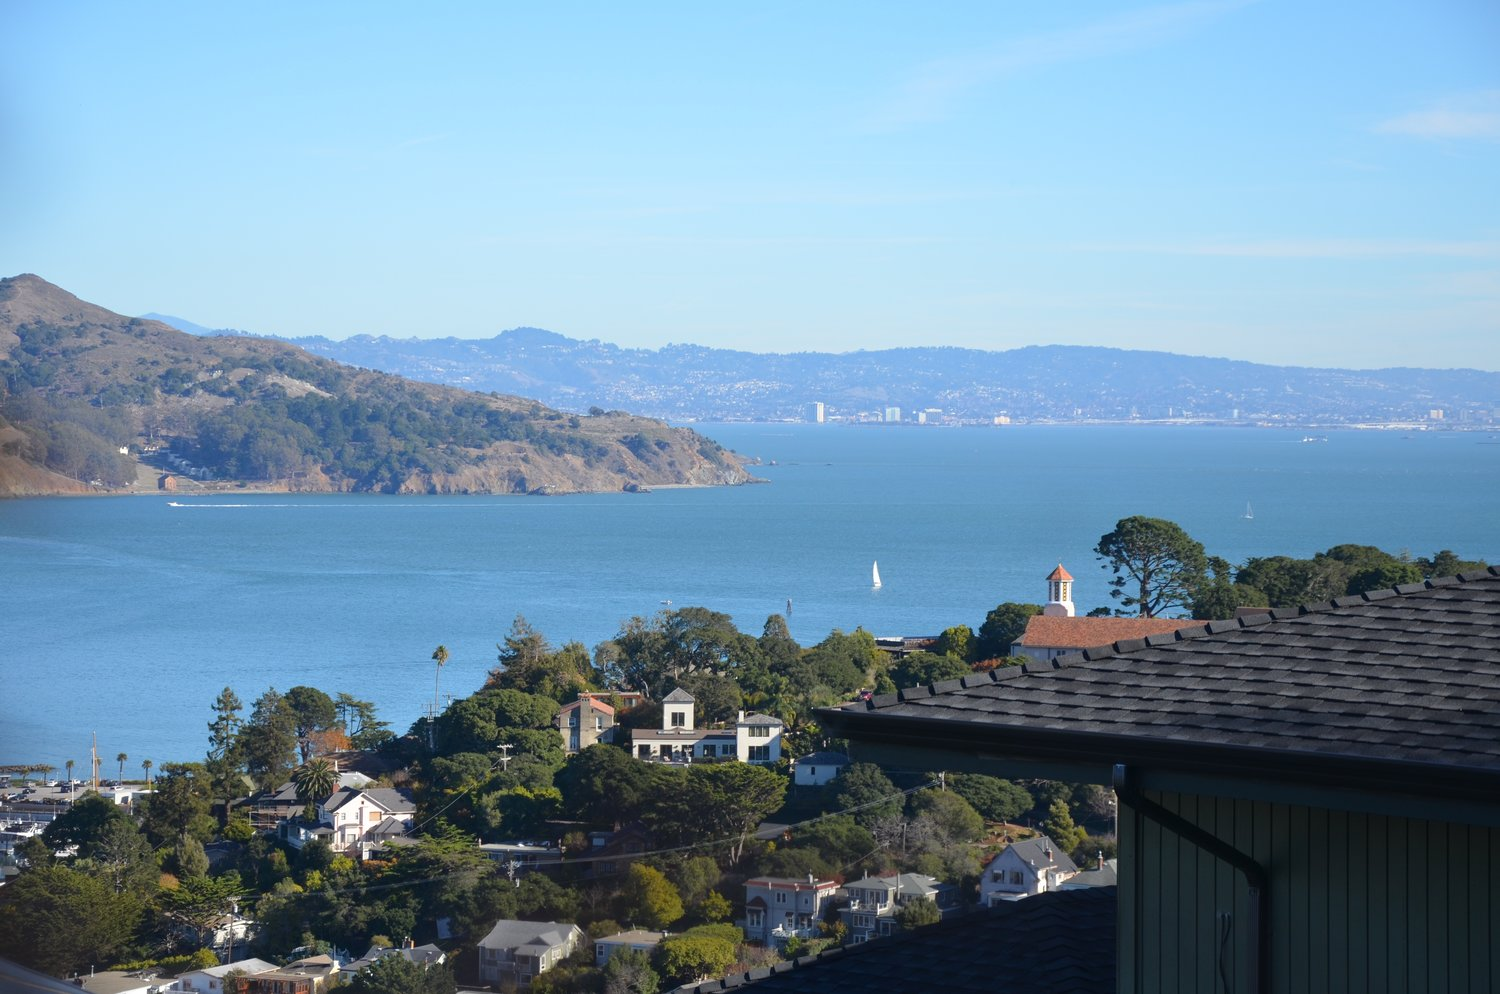 A view from Sausalito